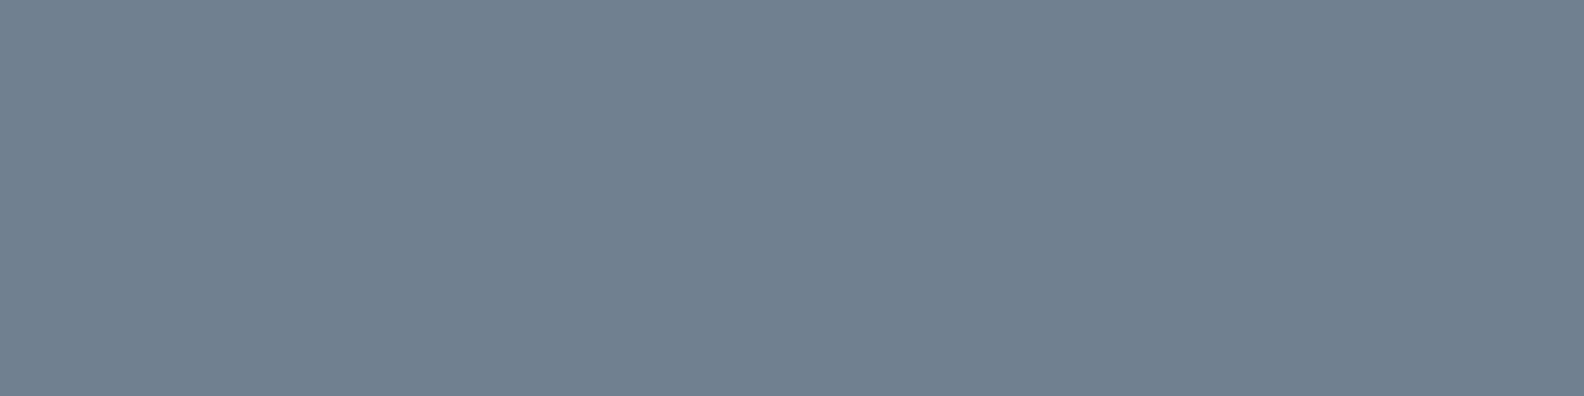 1584x396 Slate Gray Solid Color Background